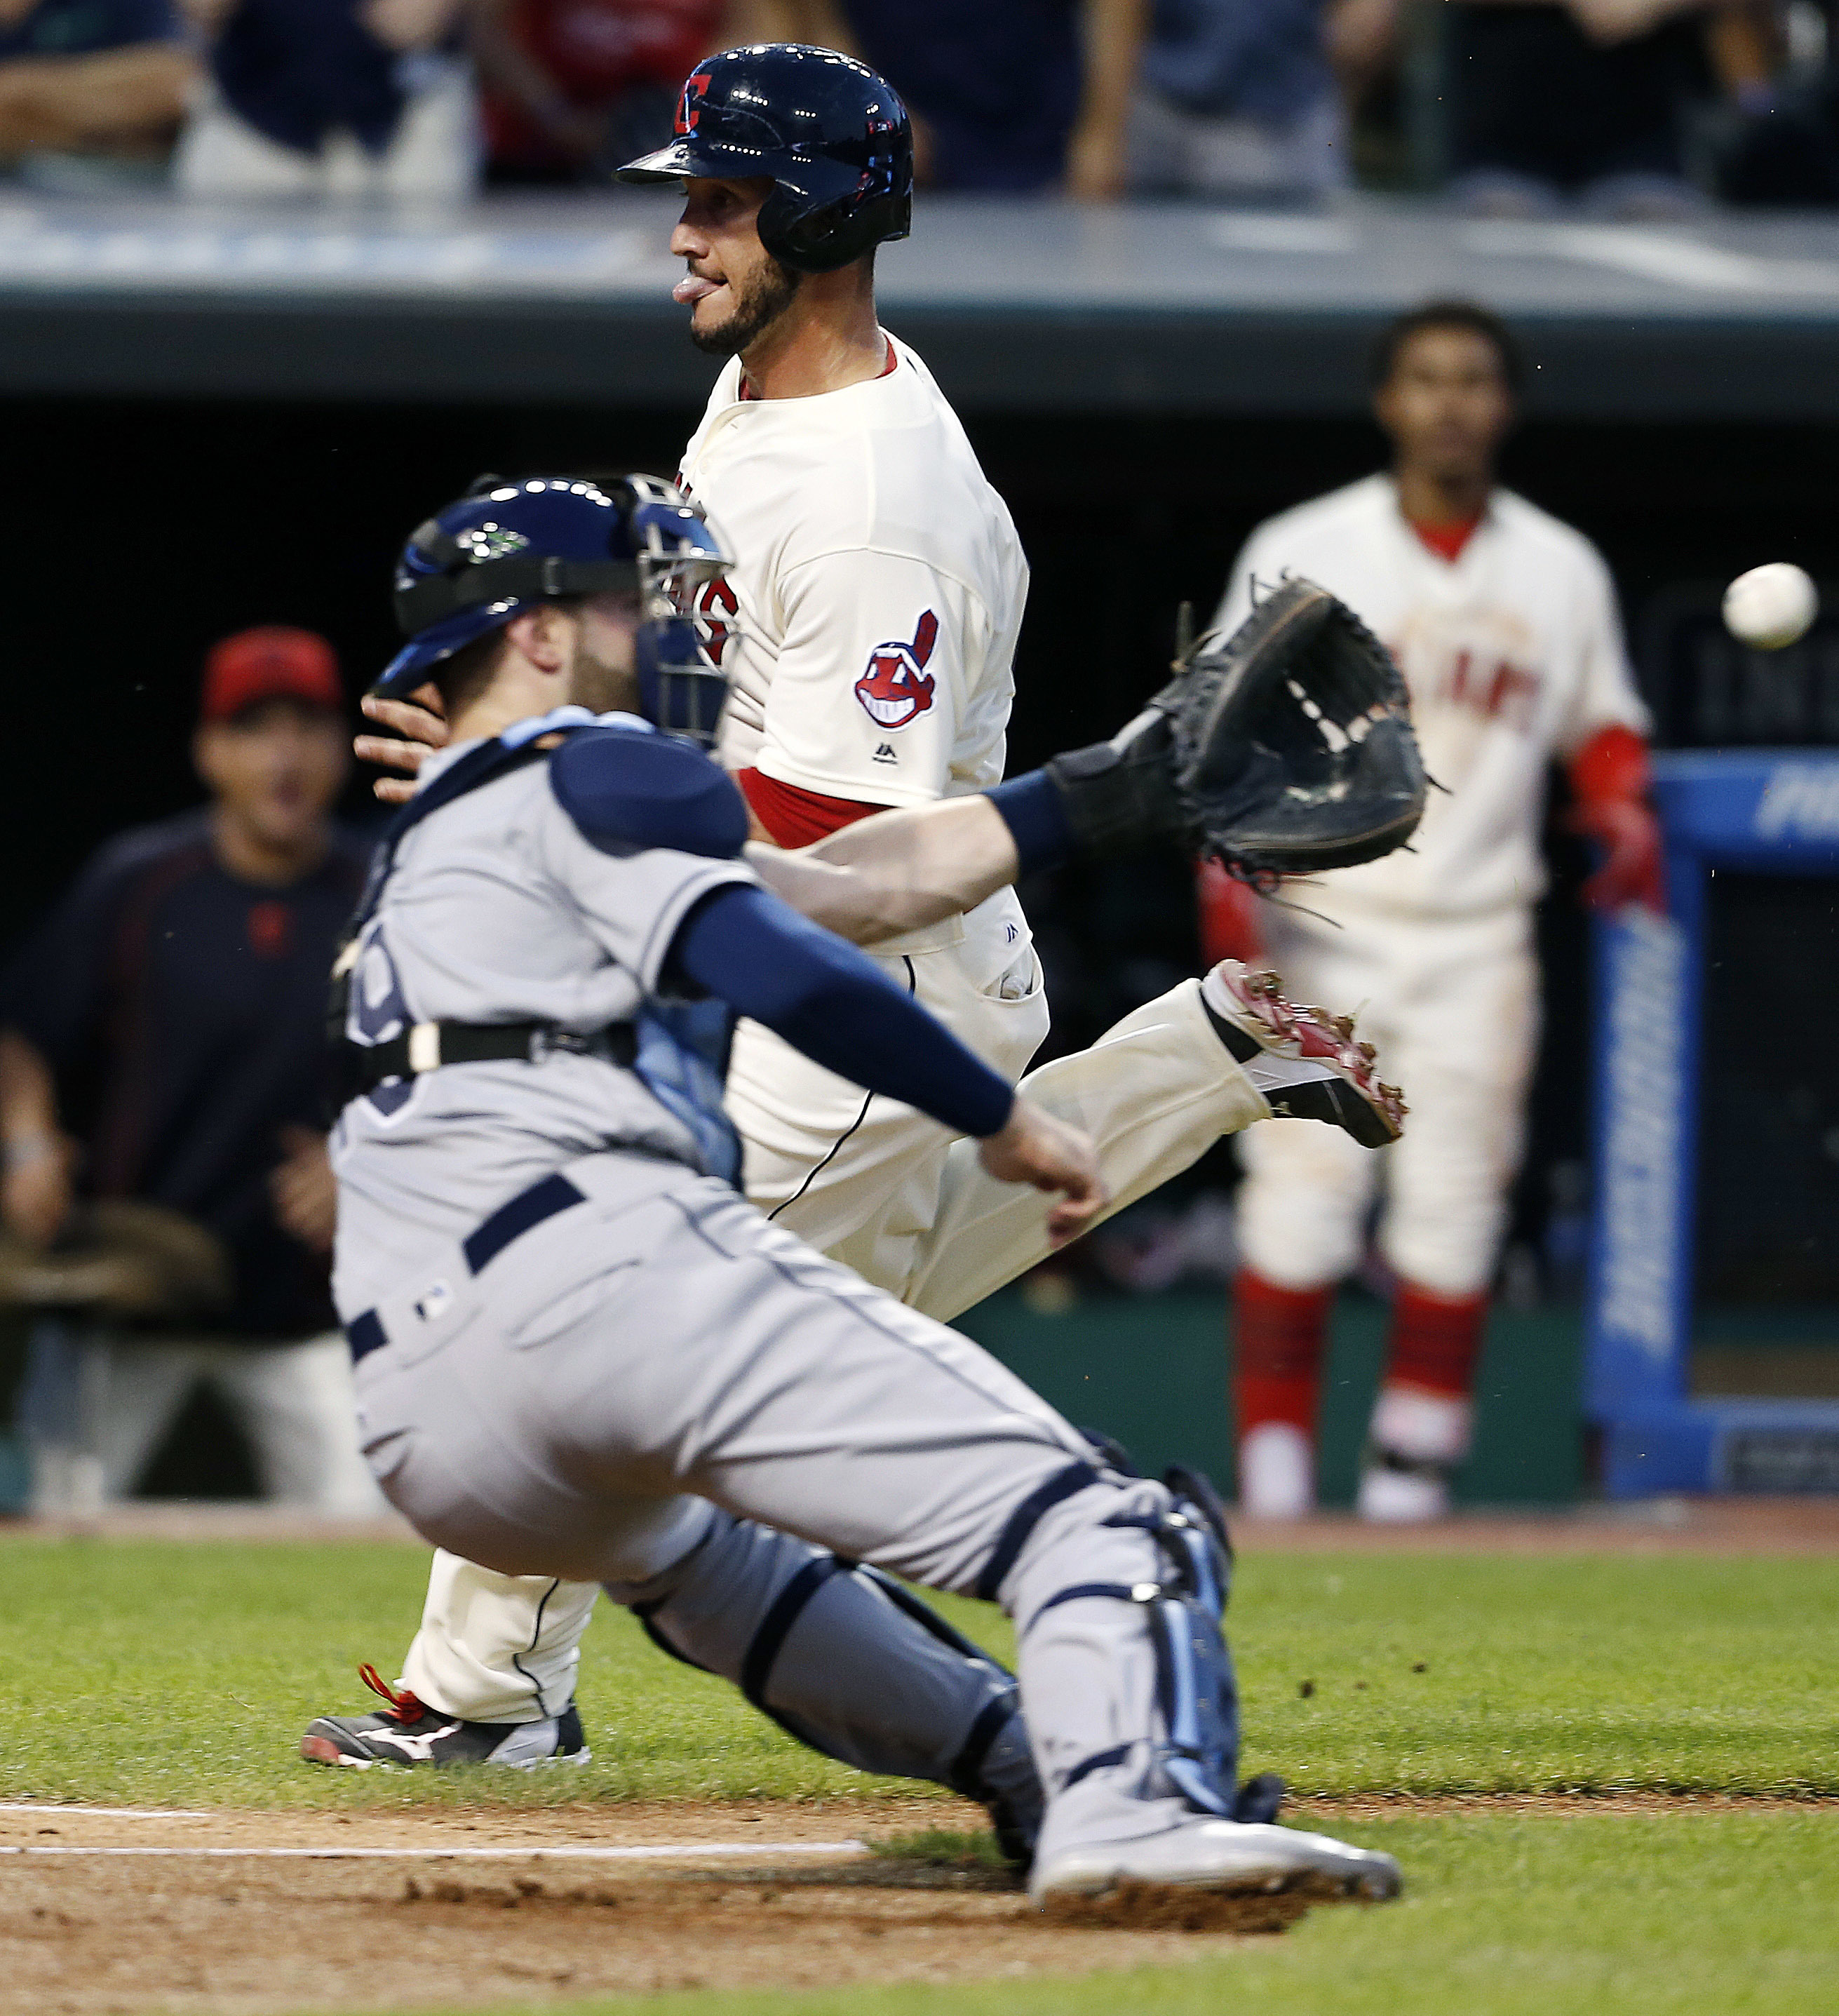 Cleveland Indians' Yan Gomes scores past Tampa Bay Rays catcher Curt Casali (19) on a sacrifice fly by Rajai Davis during the seventh inning of a baseball game Monday, June 20, 2016, in Cleveland. (AP Photo/Ron Schwane)